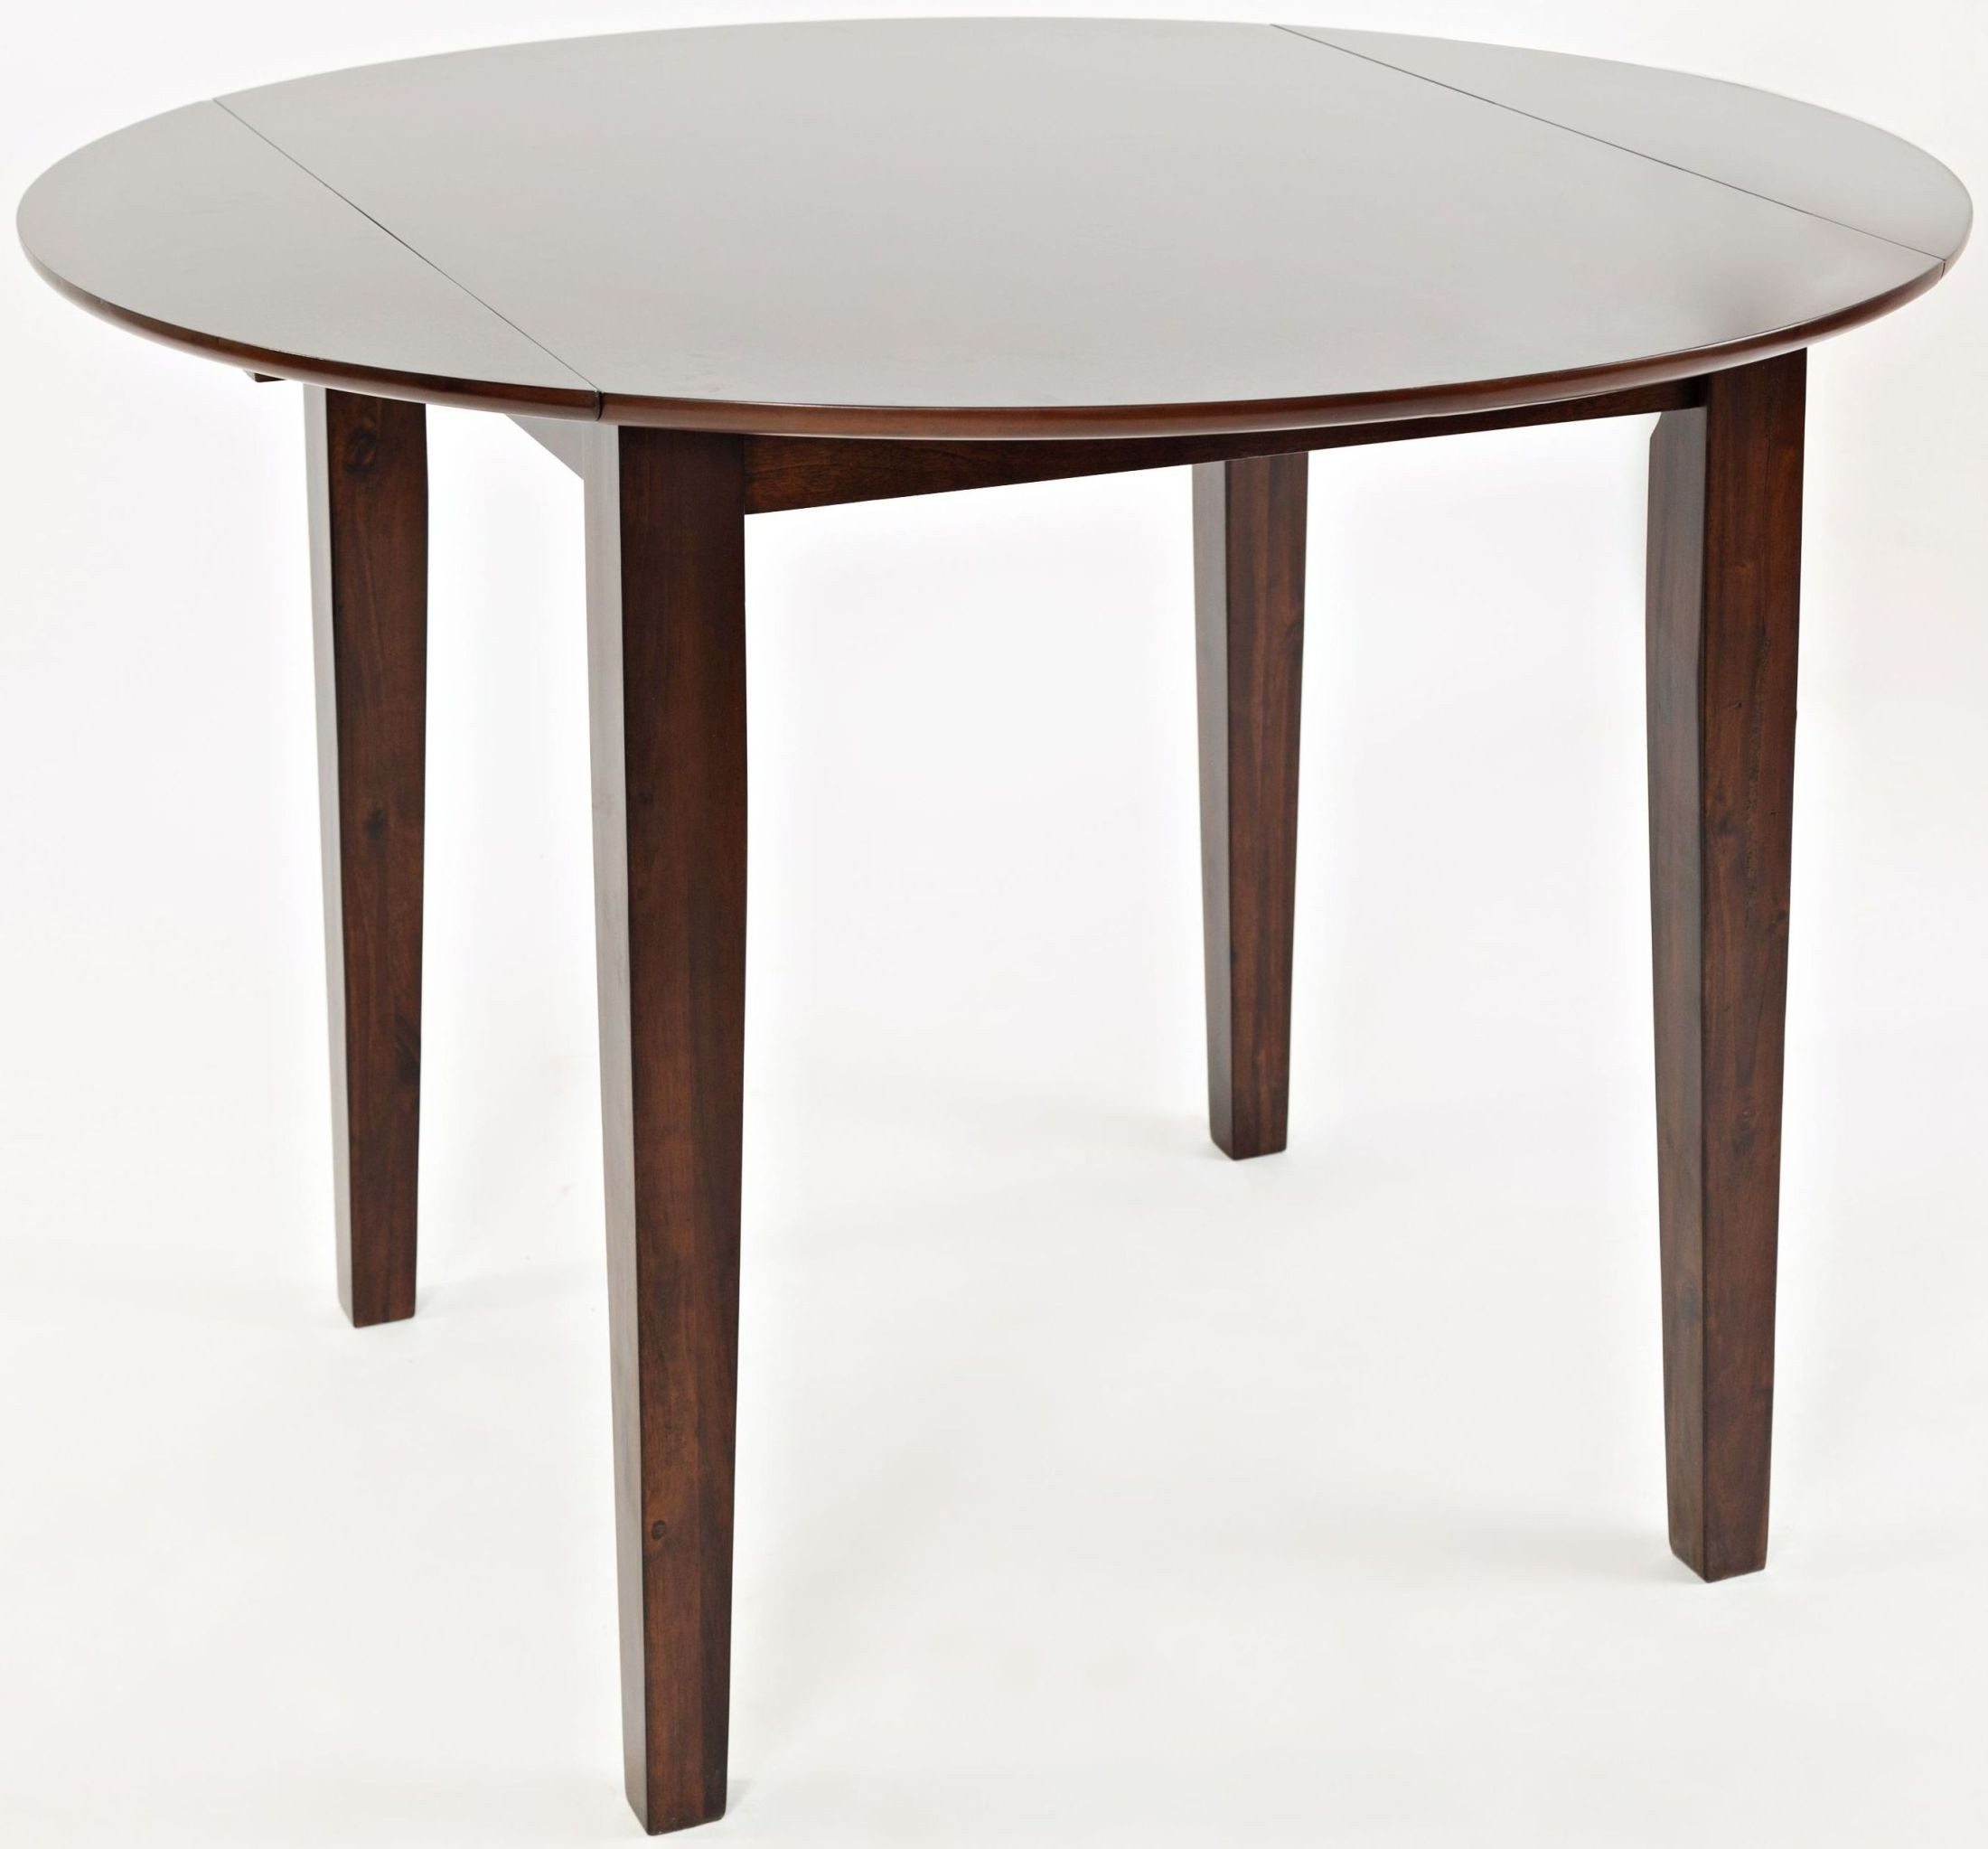 Everyday Classics Cherry Extendable Round Dining Table ...